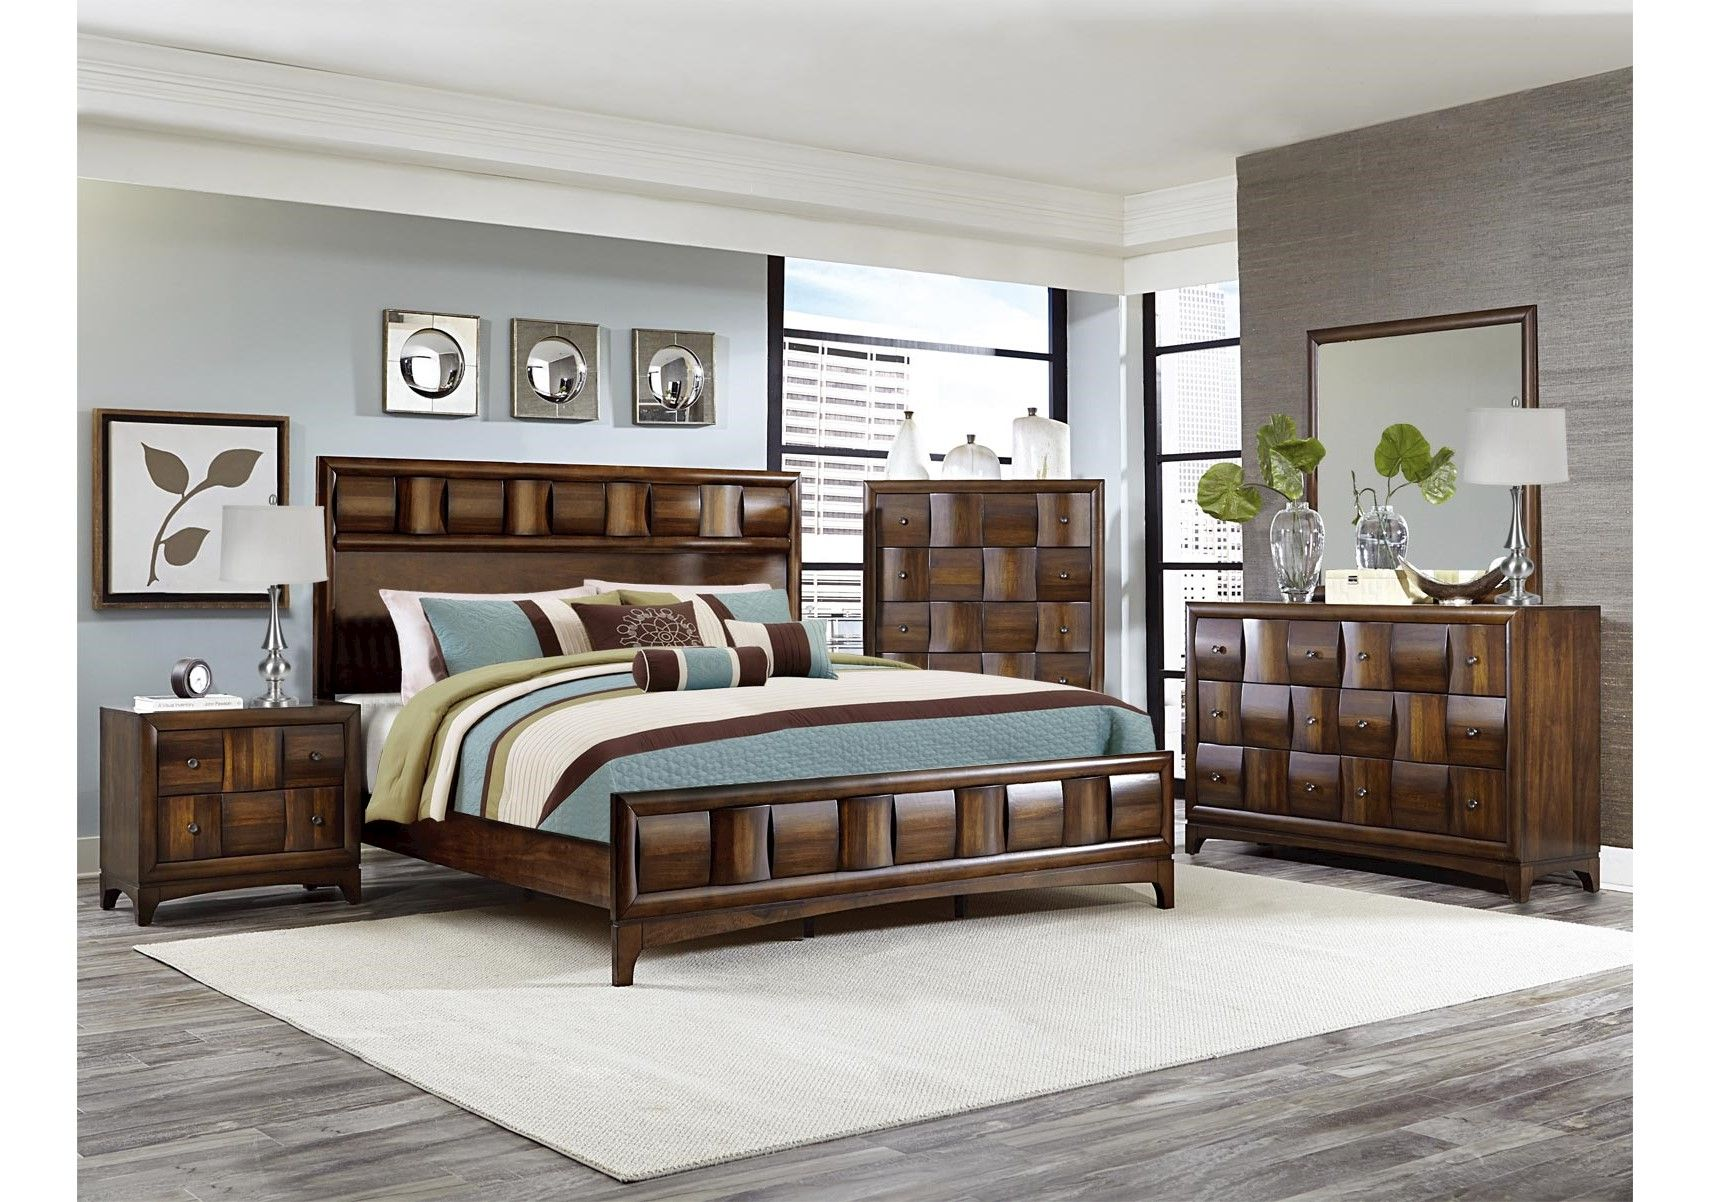 Lacks porter 4 pc queen bedroom set transitional style - Porter contemporary 6 piece bedroom set ...